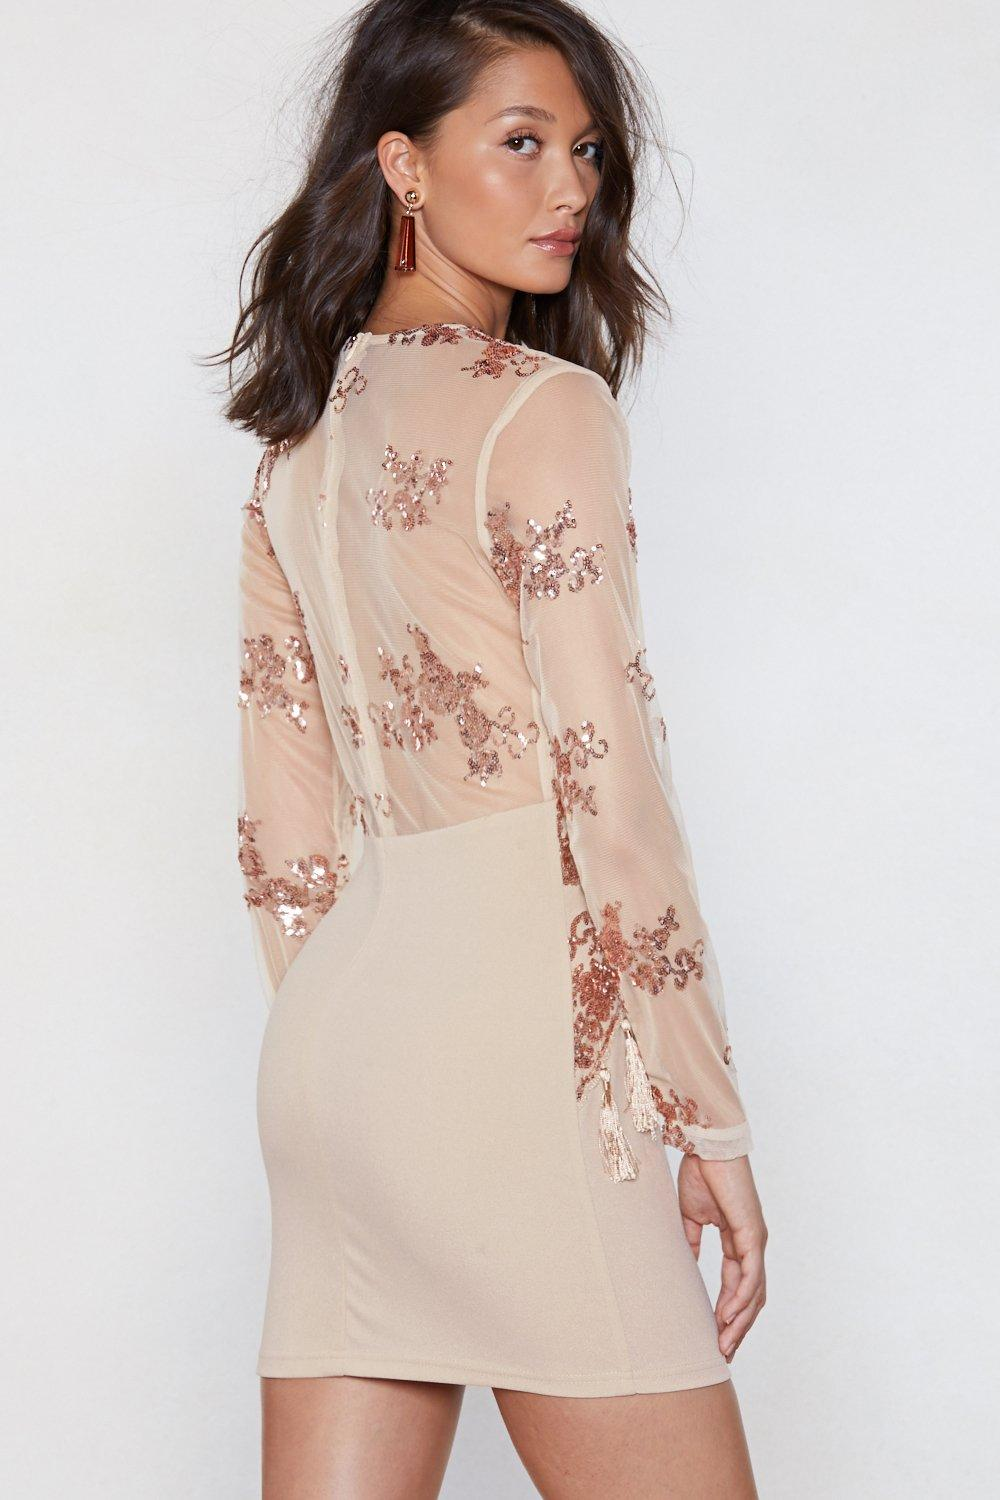 915a77471b99 How Low Can You Go Sequin Dress | Shop Clothes at Nasty Gal!